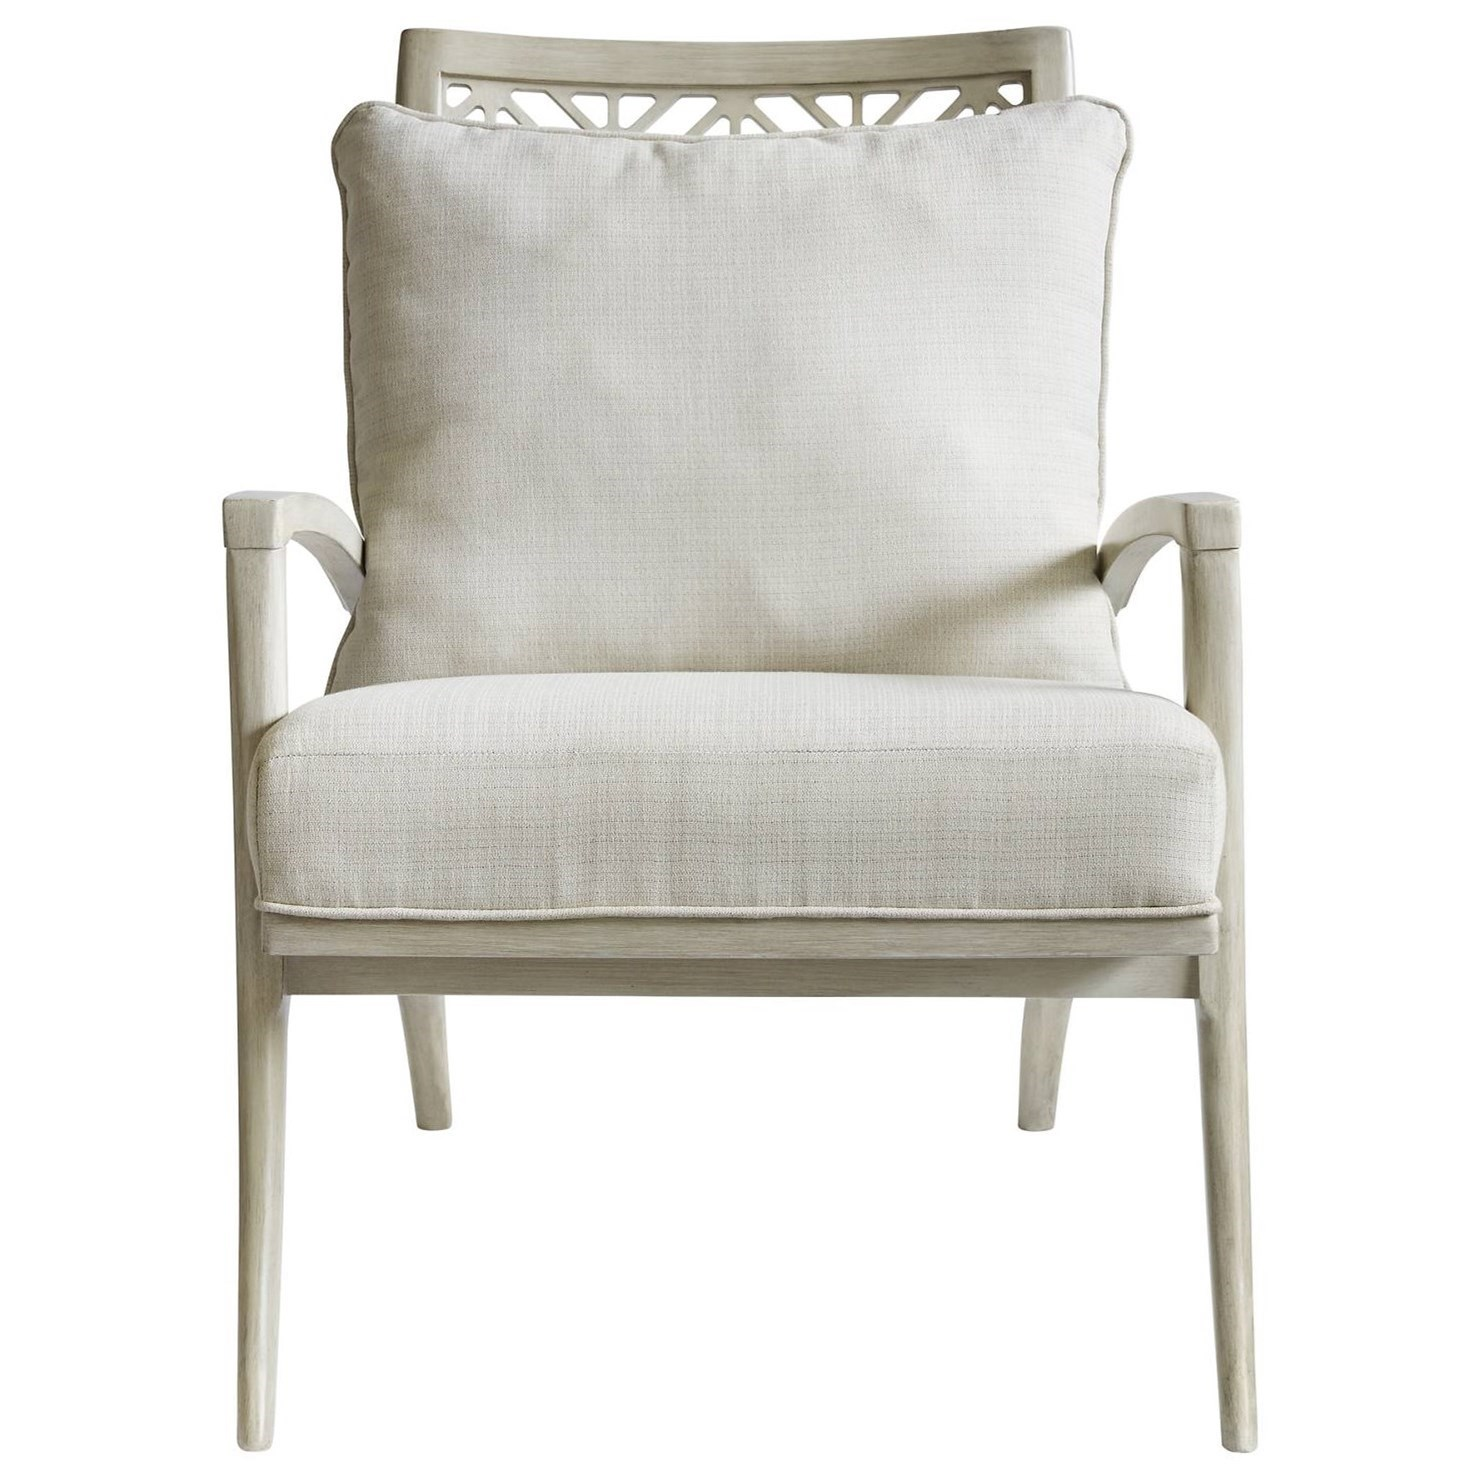 Stanley Furniture Coastal Living Oasis Catalina Accent Chair - Item Number: 527-55-74